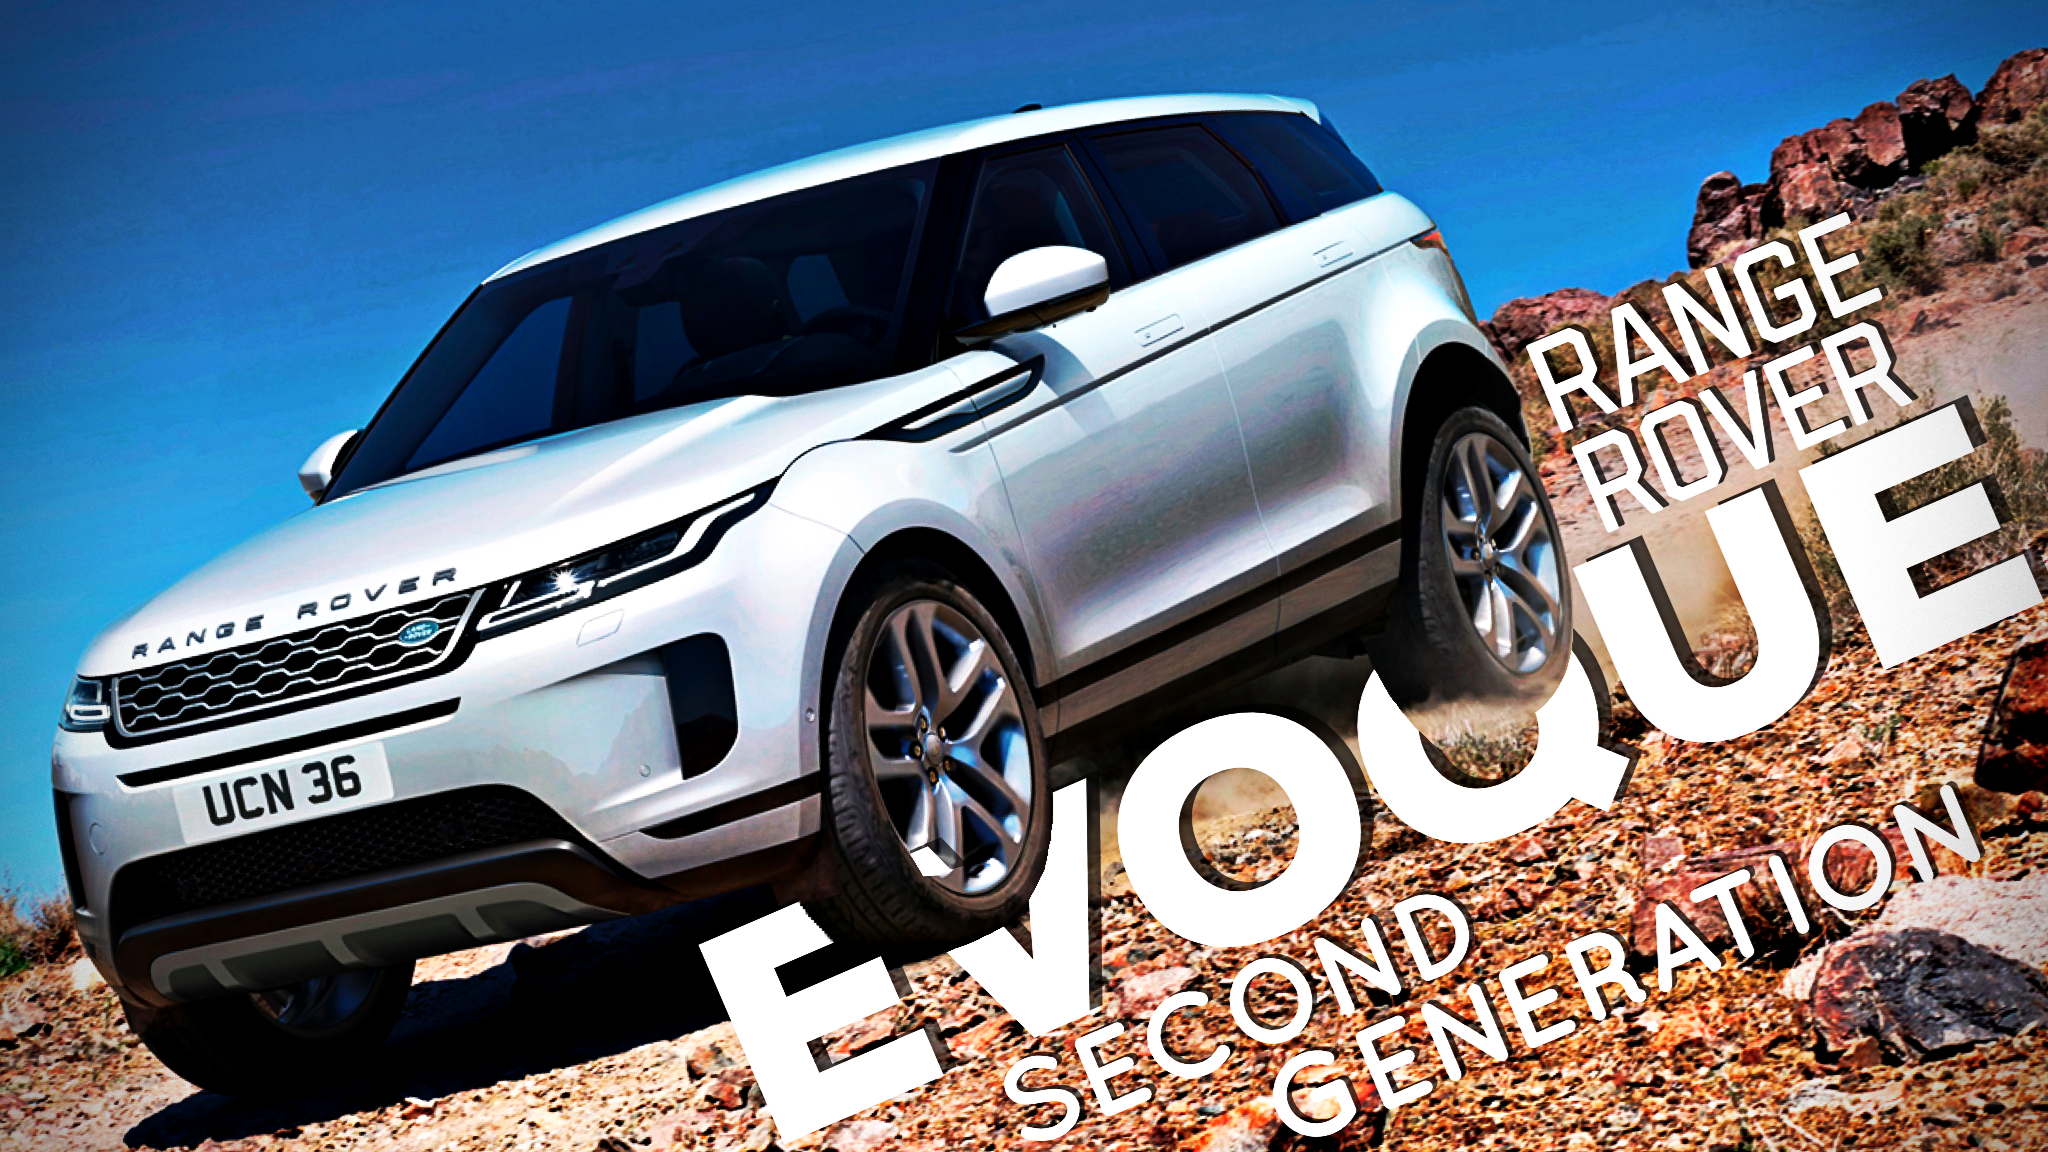 All-New Range Rover Evoque Premieres In The UK